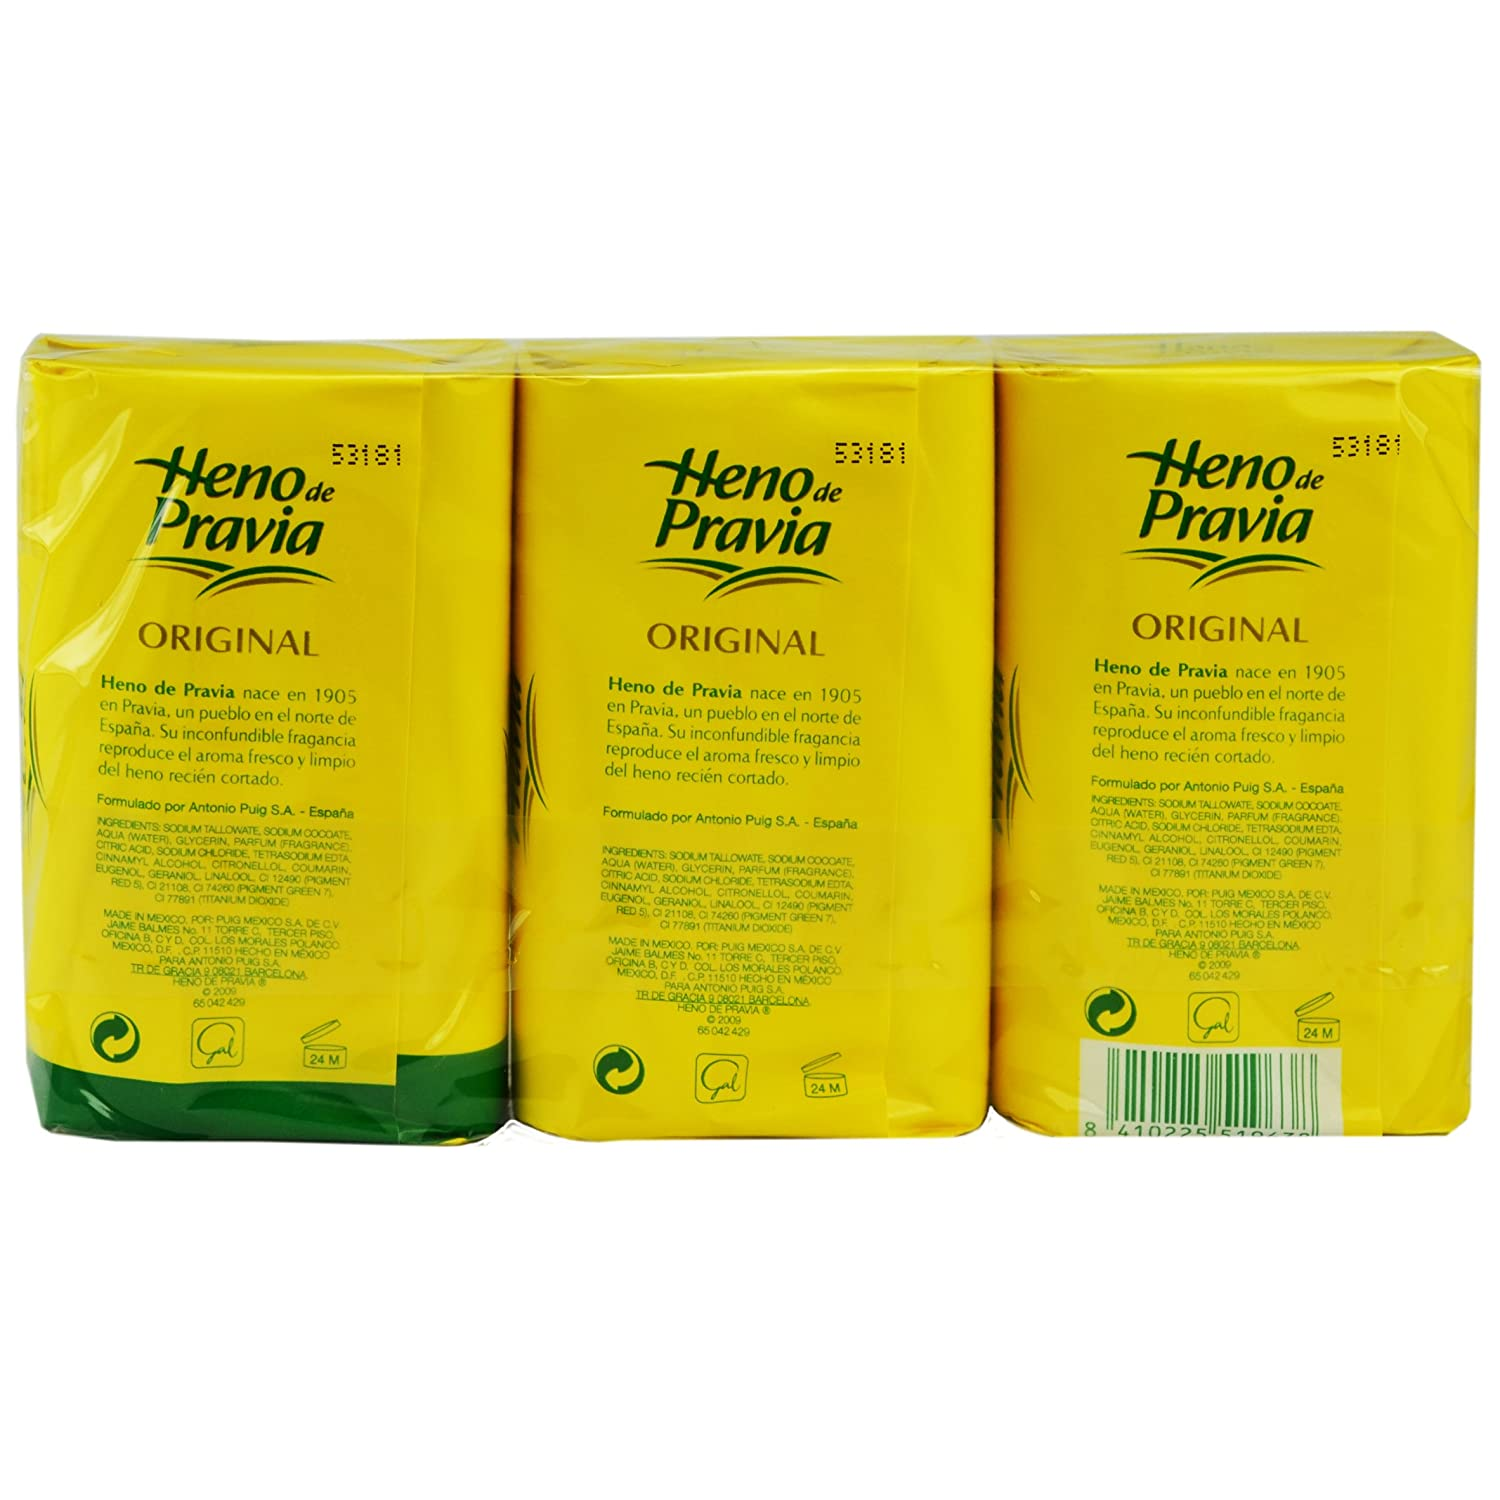 Amazon.com : Heno de Pravia Natural Bath Soap 4oz (3 Soaps Total) : Beauty